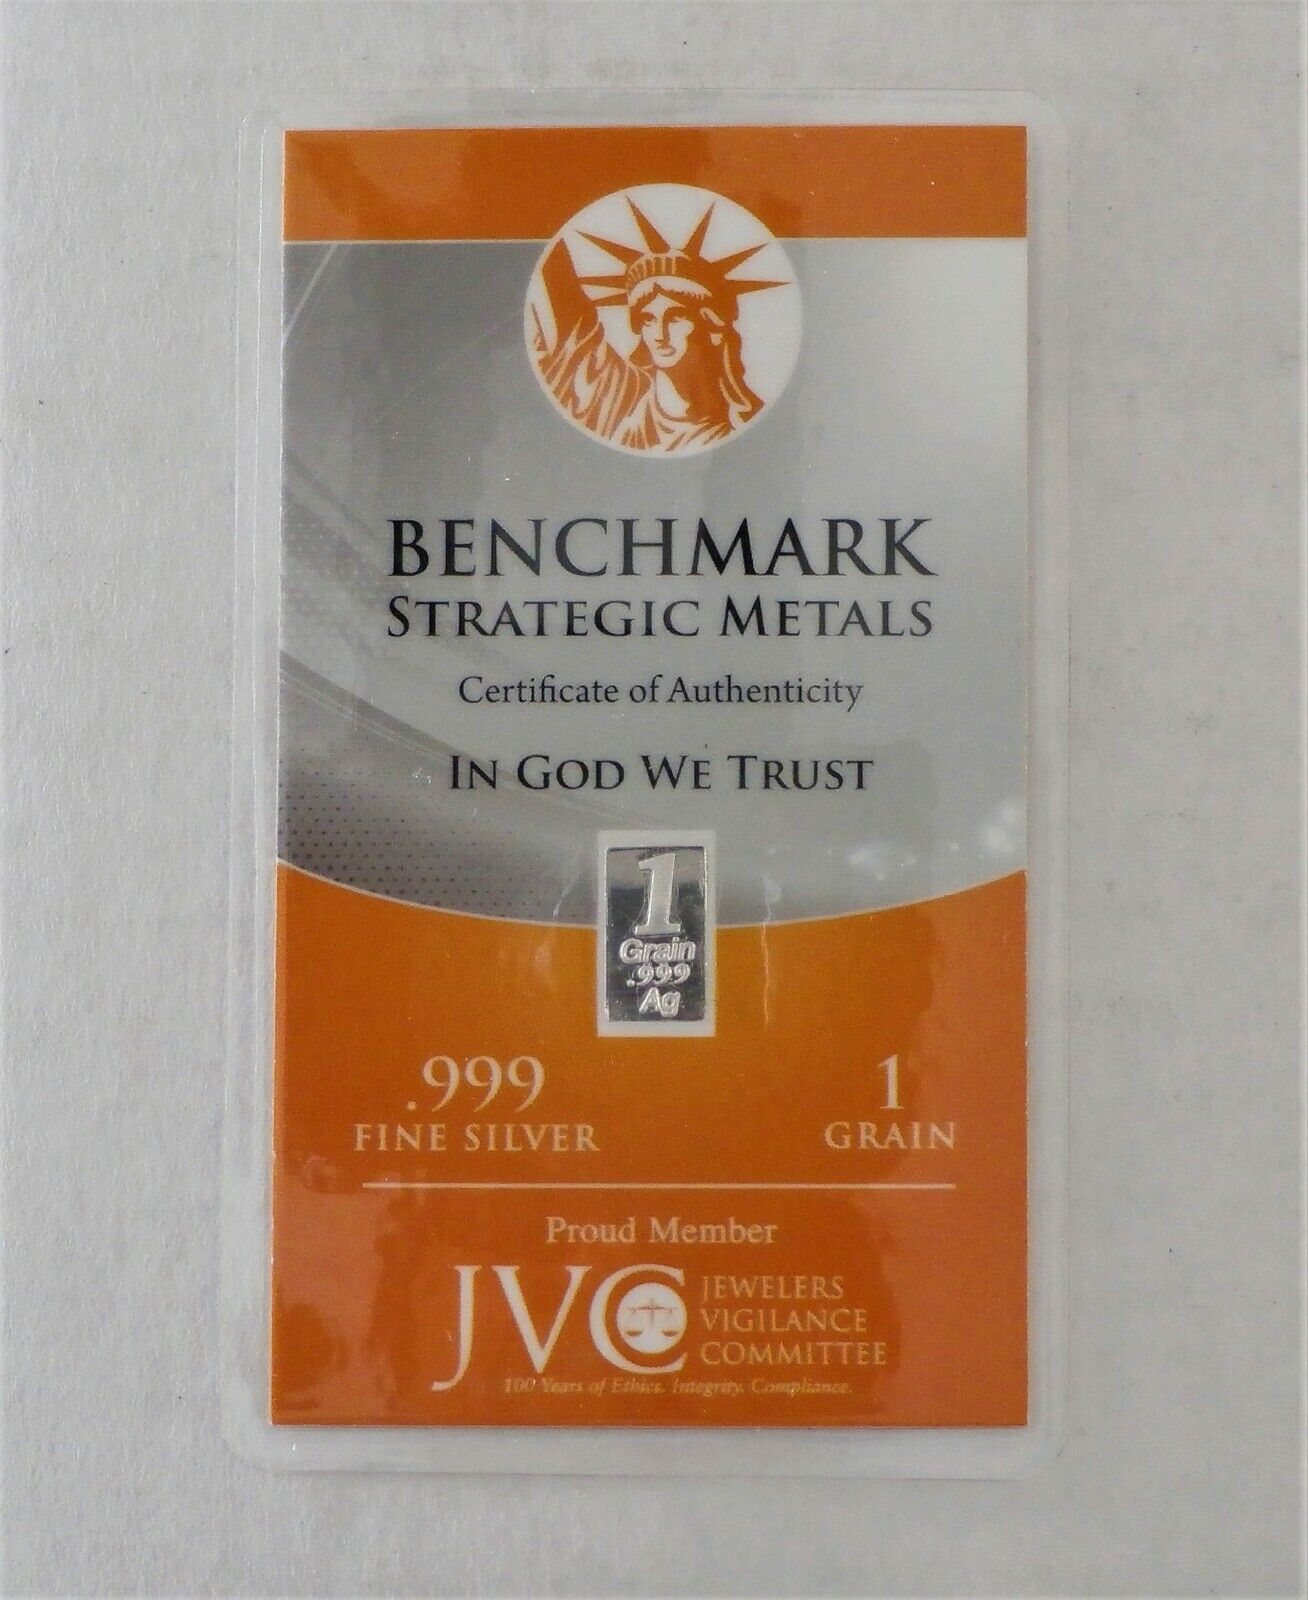 WOW 10 PACK 1 Grain.999 FINE PURE SILVER BAR Sealed 10 PACK PURE SILVER B18 - $15.99